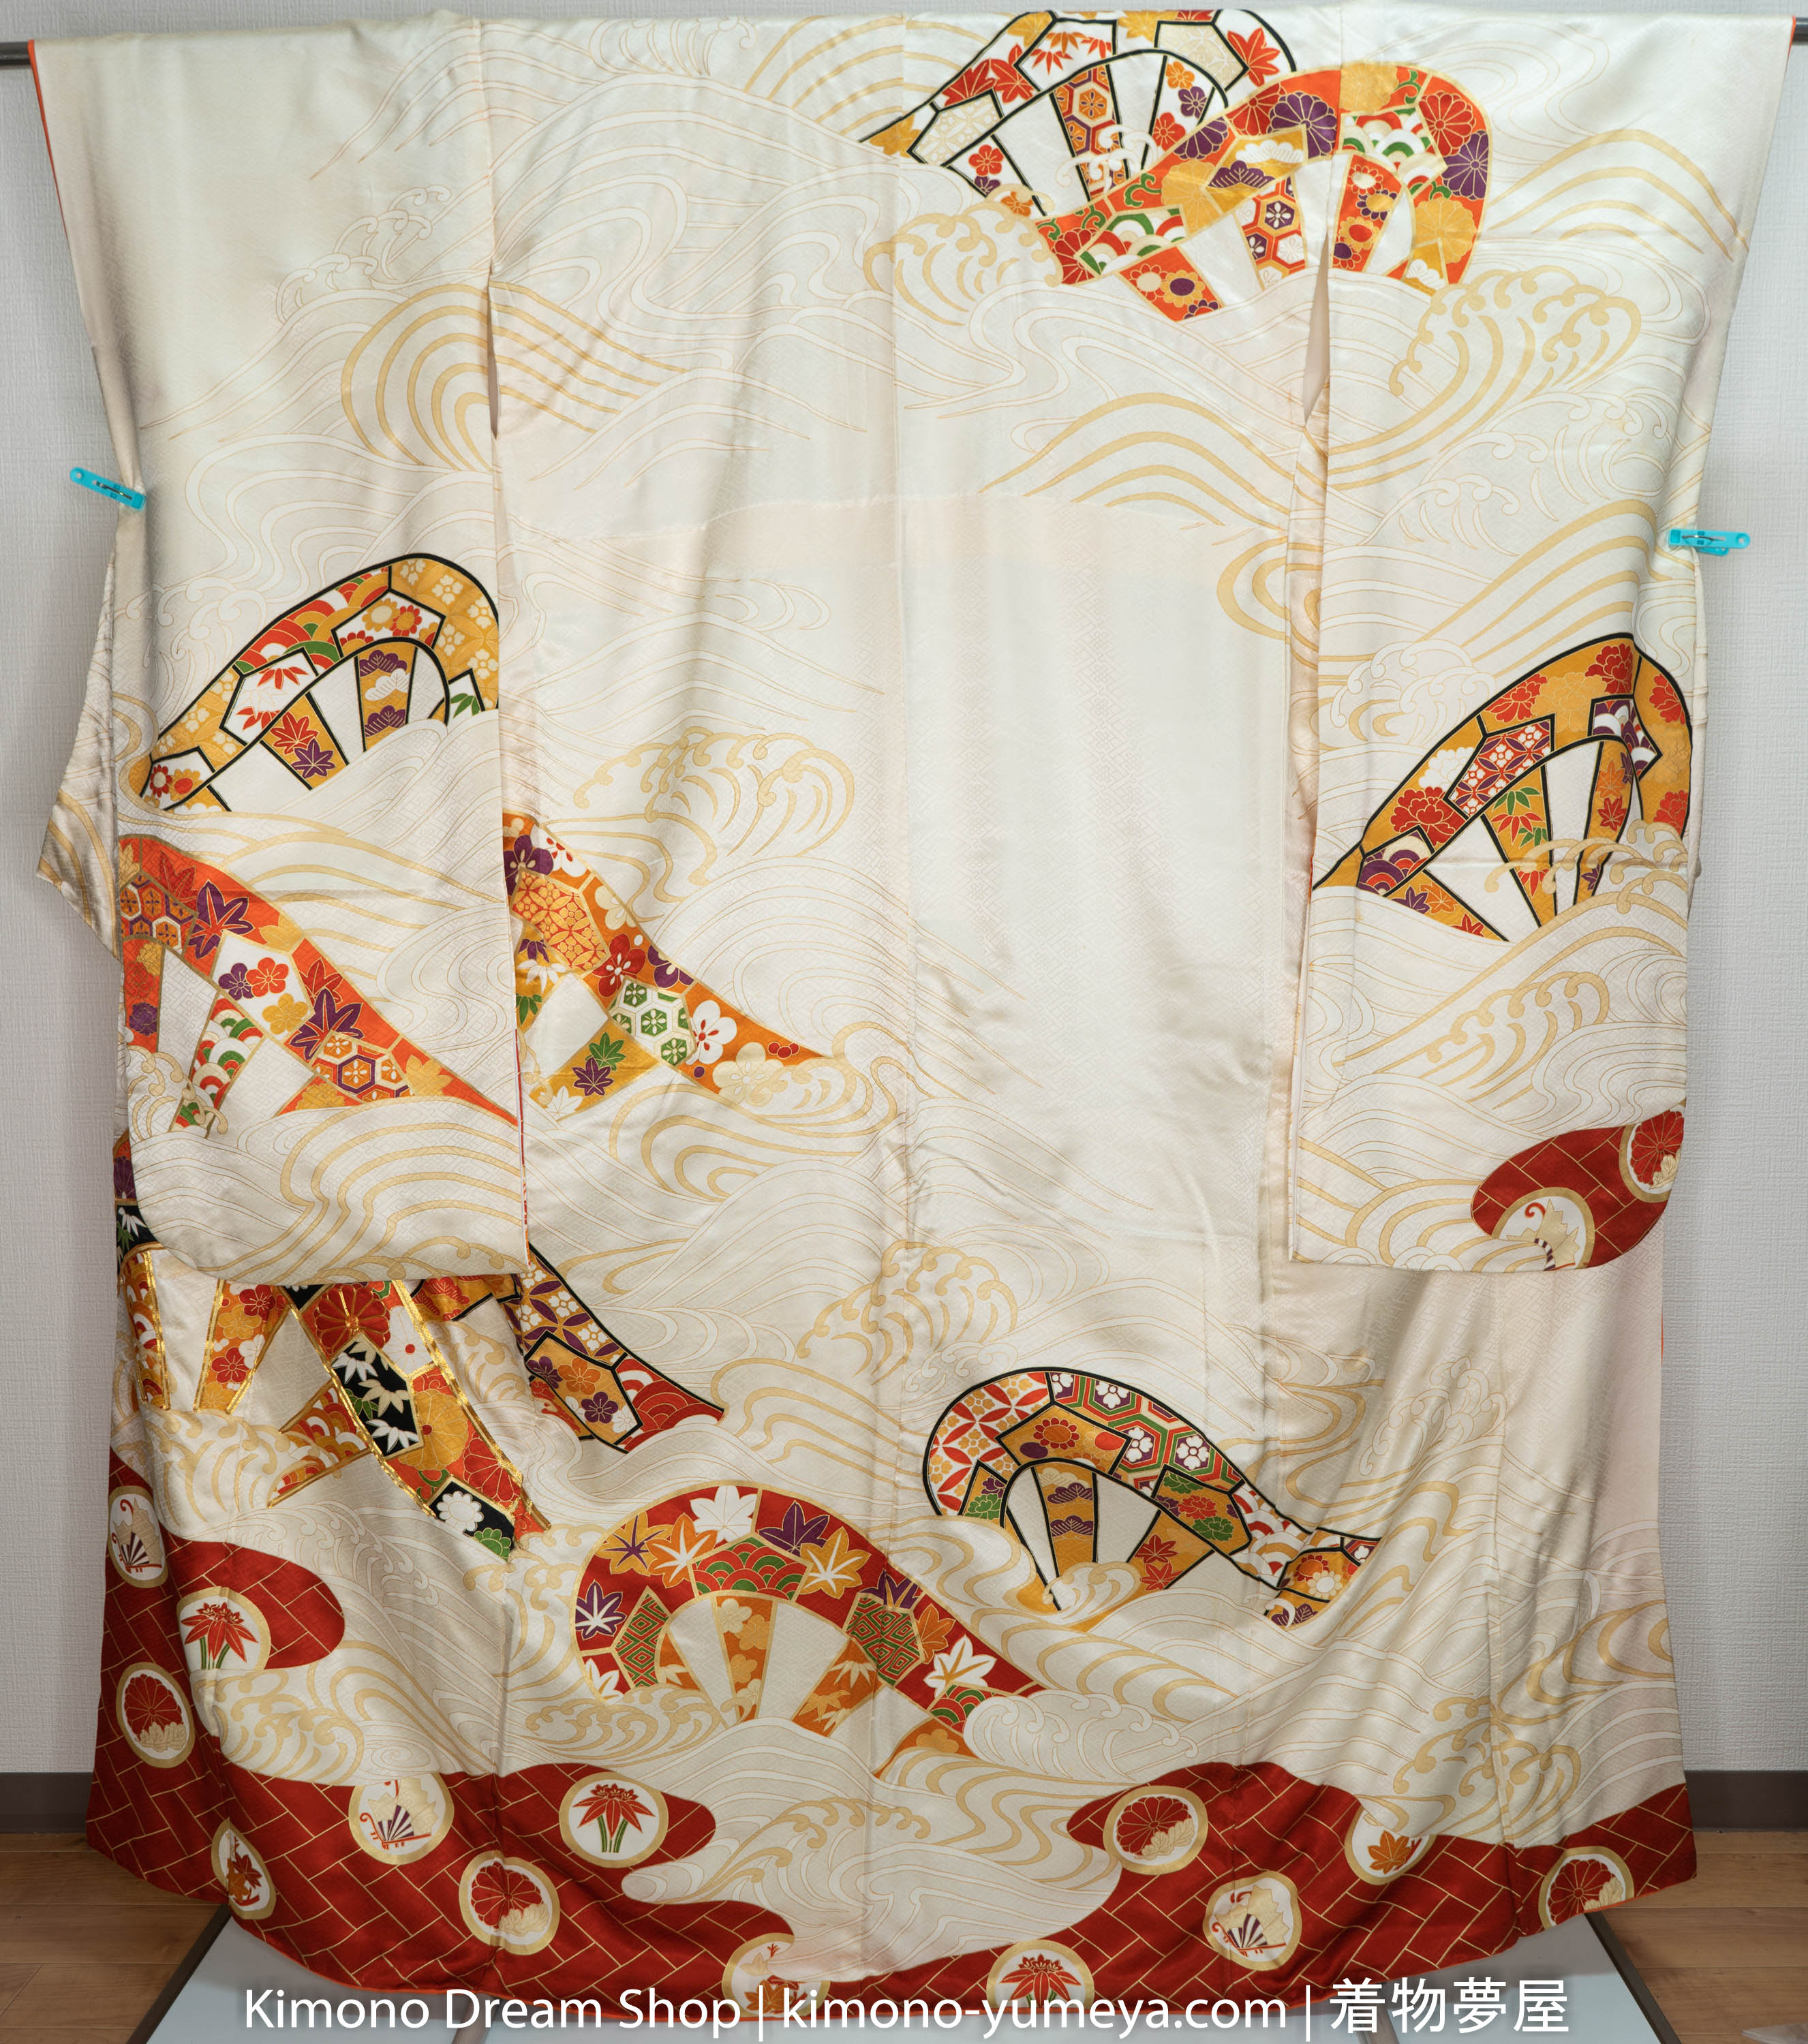 Mixture of Traditional Patterns Furisode - Beige Red Great Wave off Kanagawa - Vintage Silk Kimono